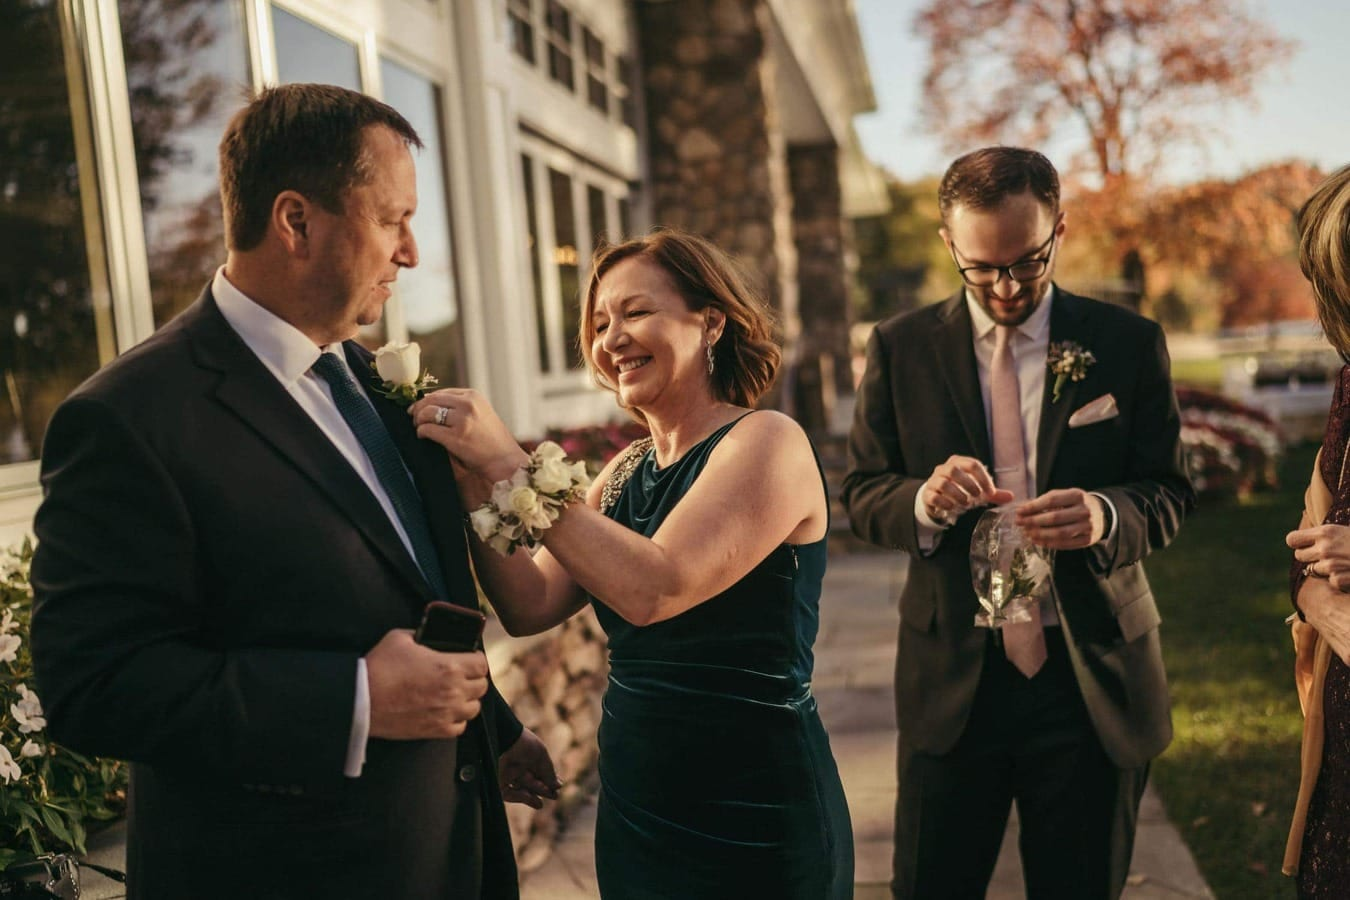 Mother pins boutonniere on her husband before wedding ceremony.